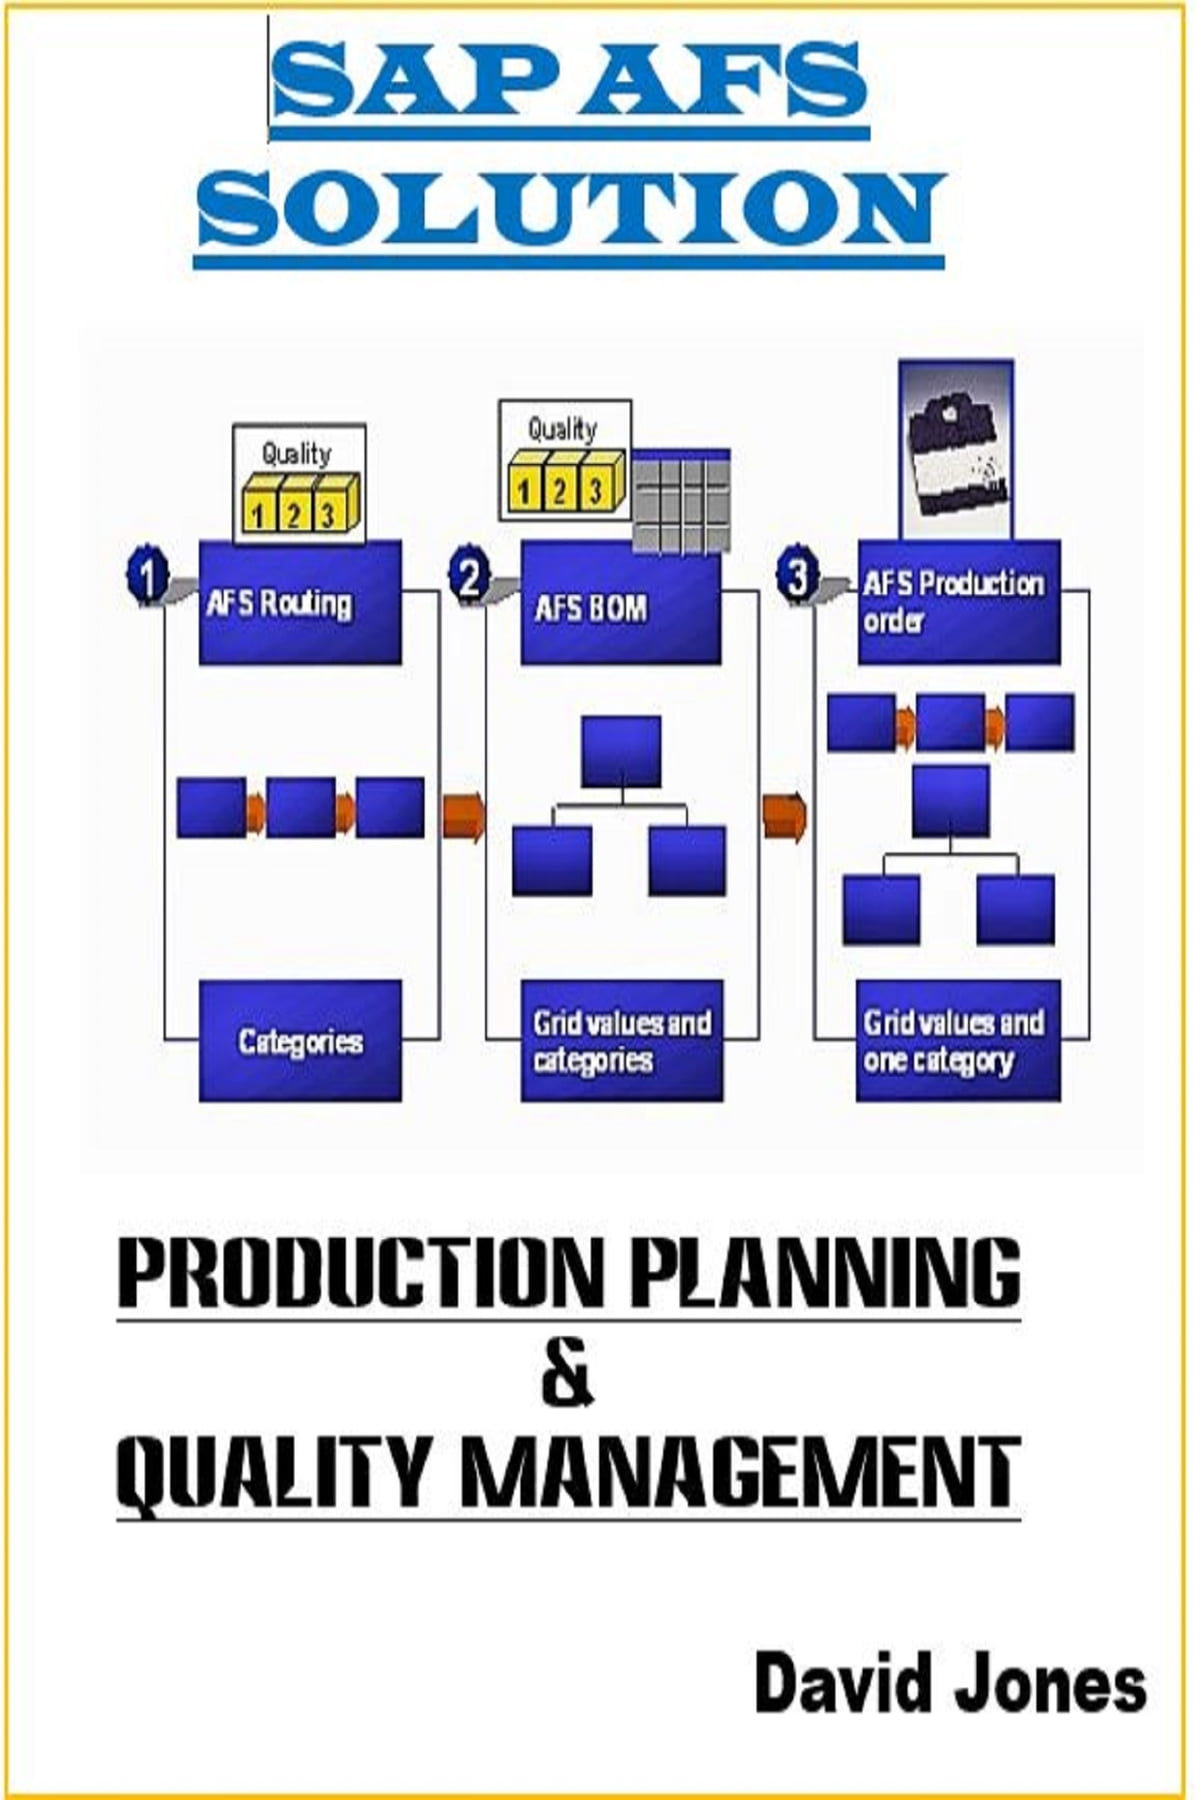 Modules Production Planning and Quality Management In SAP AFS Solution  ebook by David Jones - Rakuten Kobo